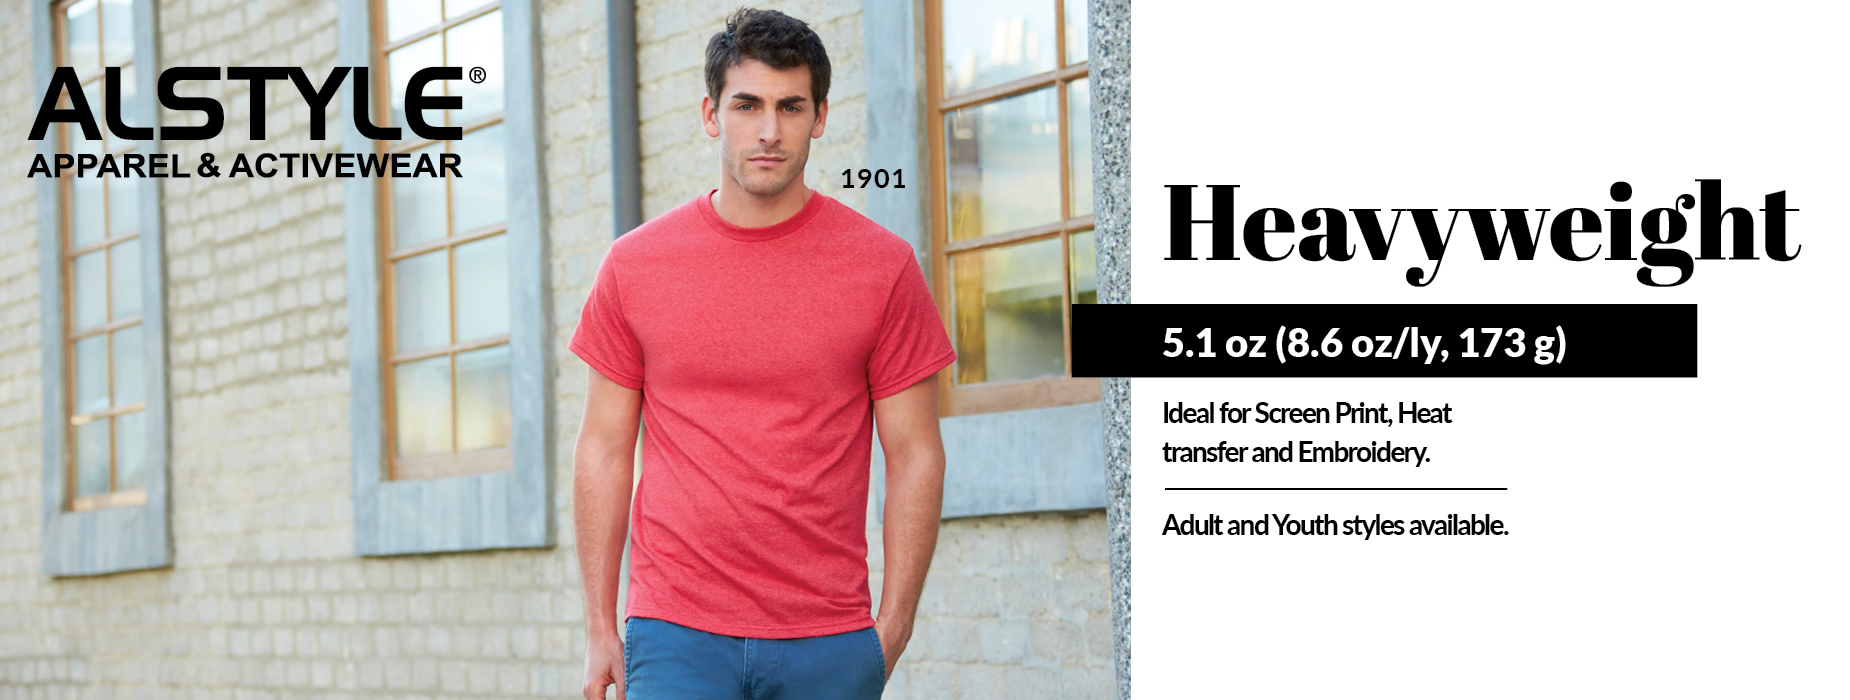 Shop Heavyweight, View our heavyweight collection from Alstyle USA